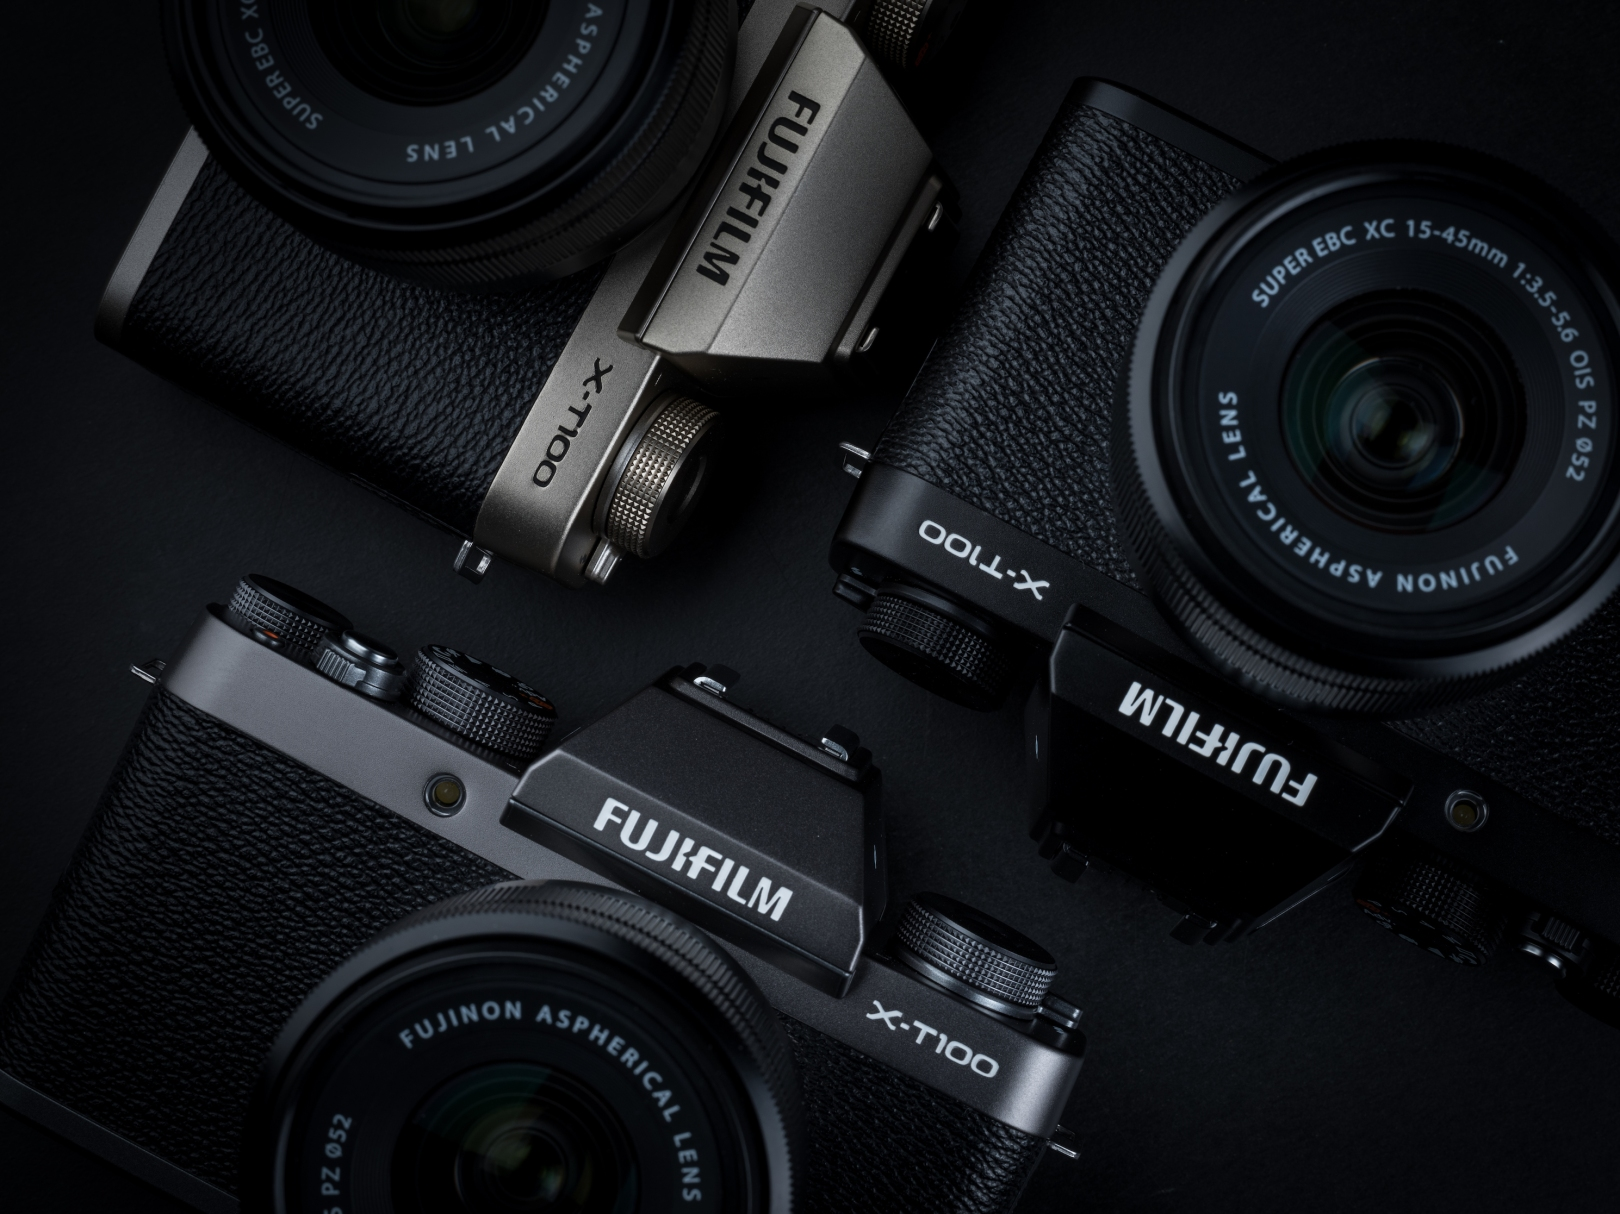 X T100 Indonesia Juragansynopsis Fujifilm Xt100 Kit 15 45mm Garansi Resmi Emas Review Quality On A Budget